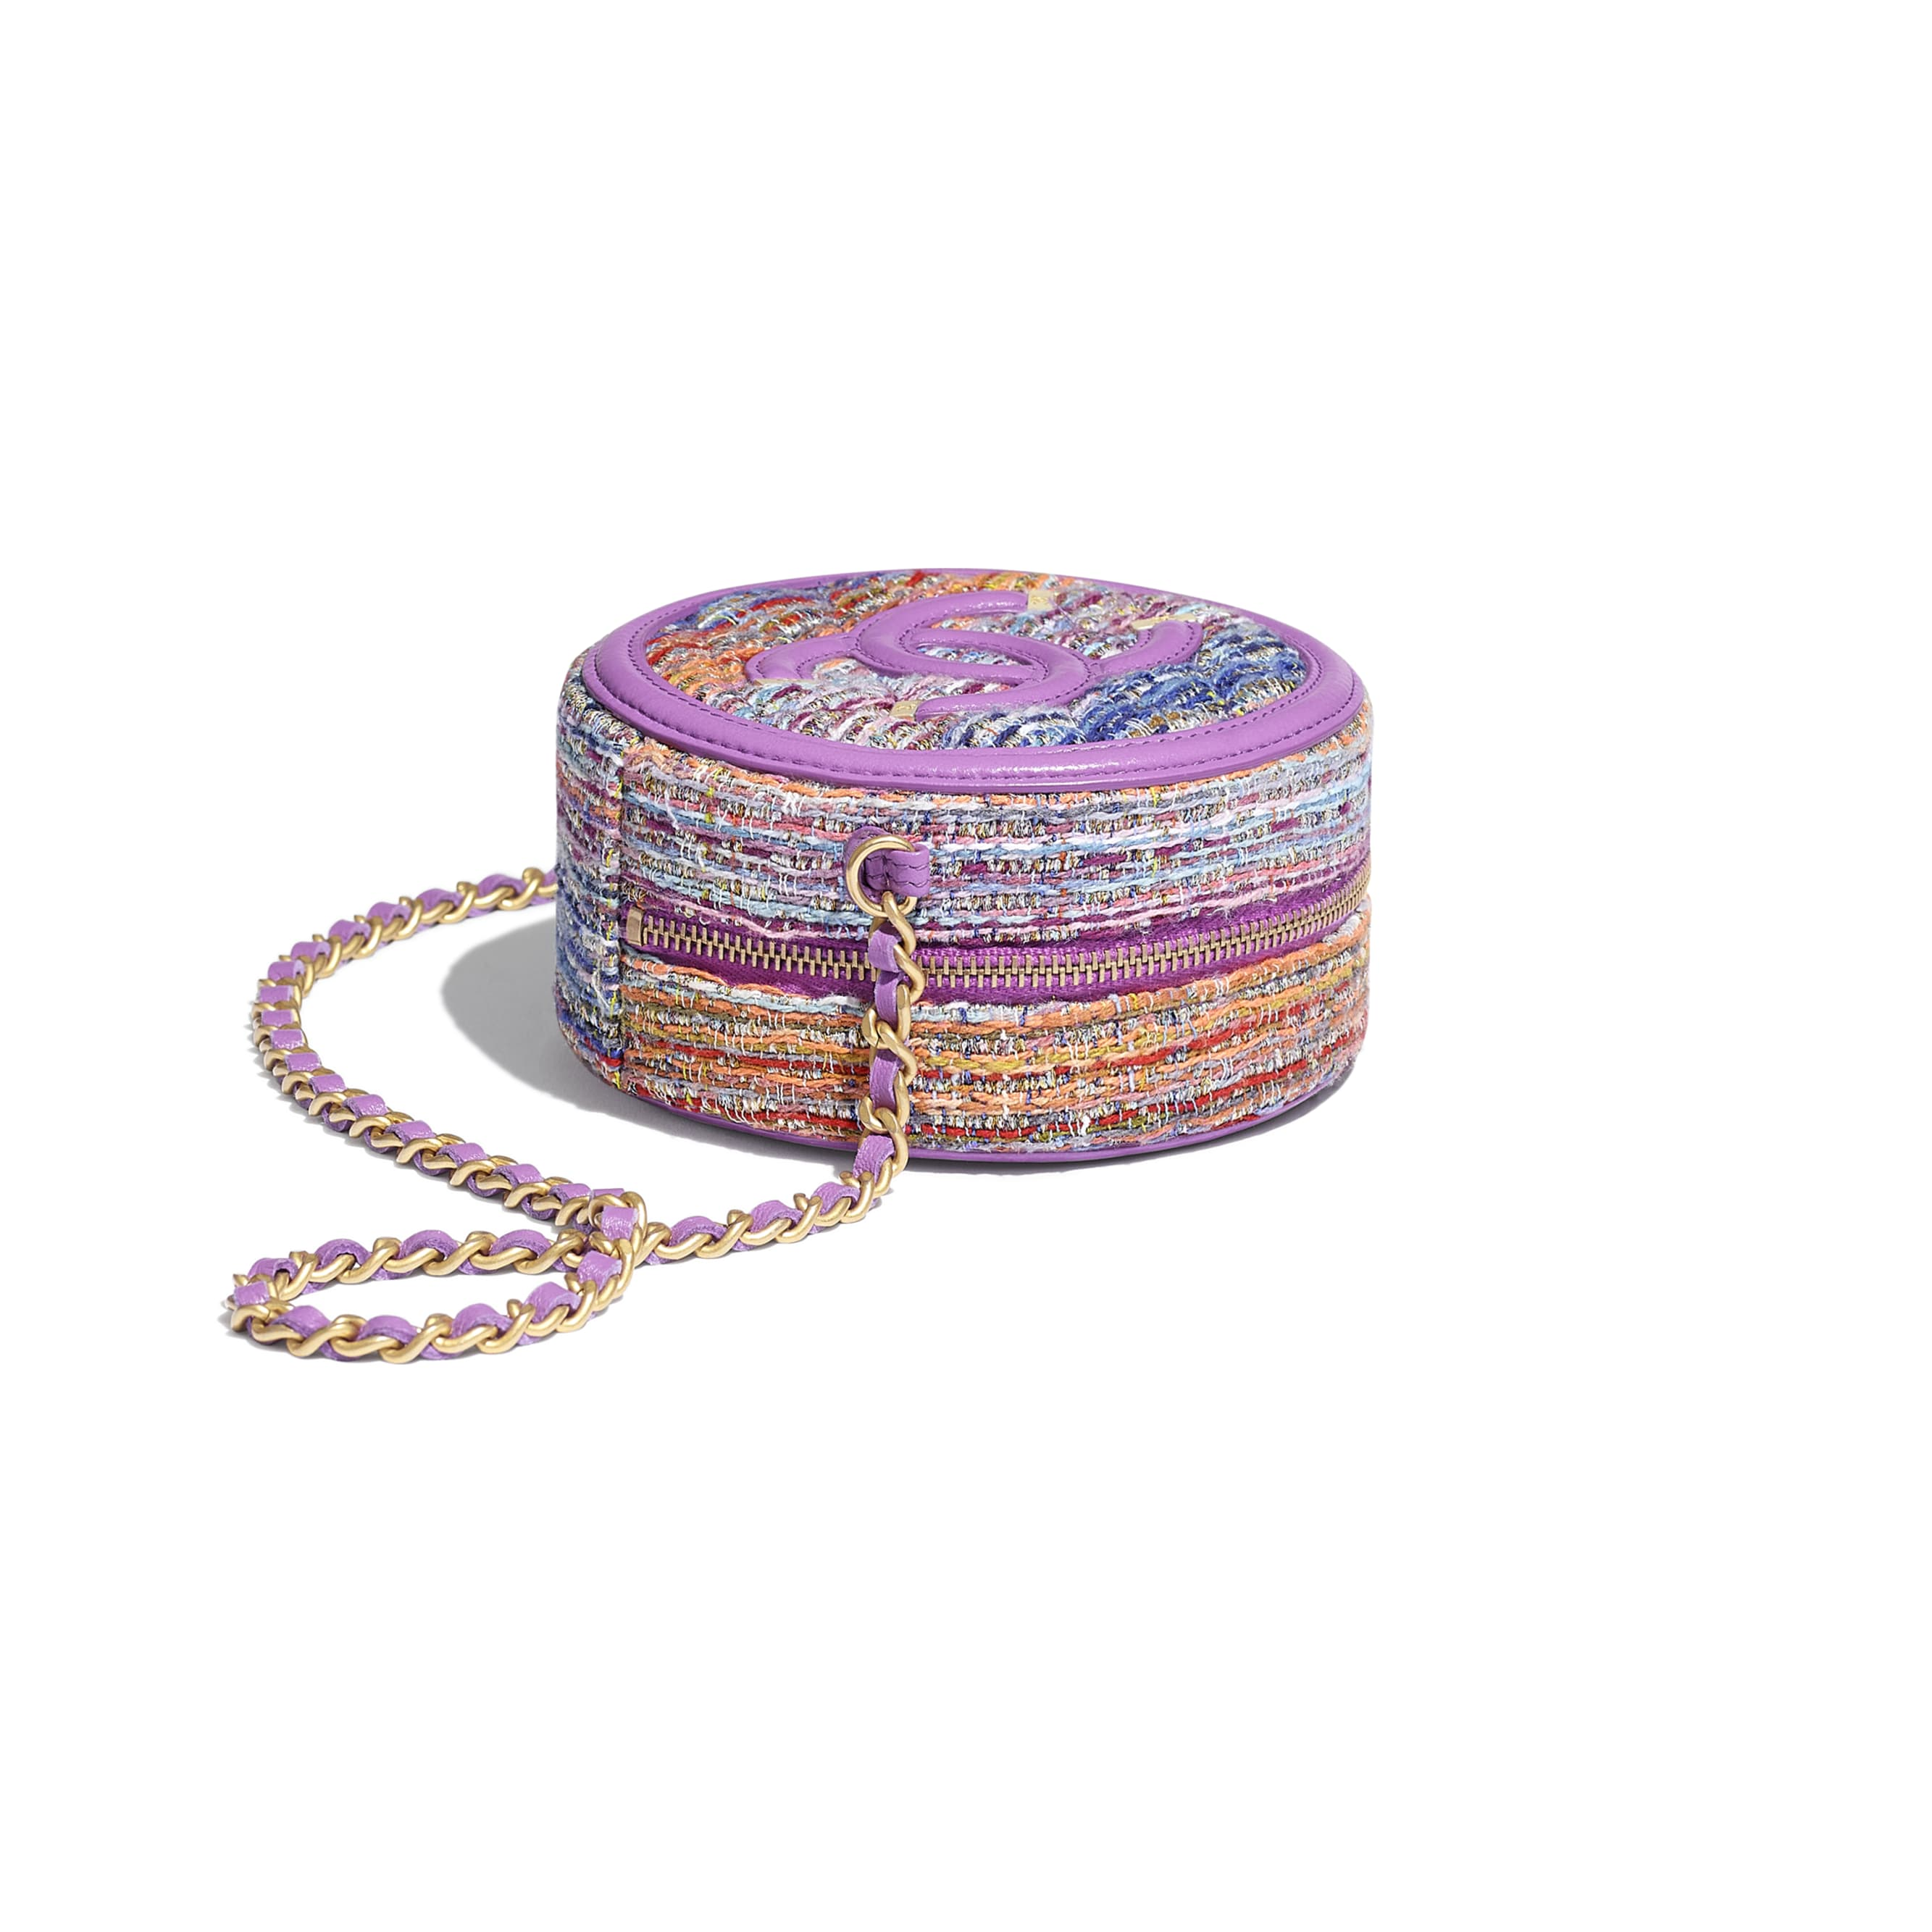 Clutch With Chain - Multicolour - Tweed, Calfskin & Gold-Tone Metal - Extra view - see standard sized version